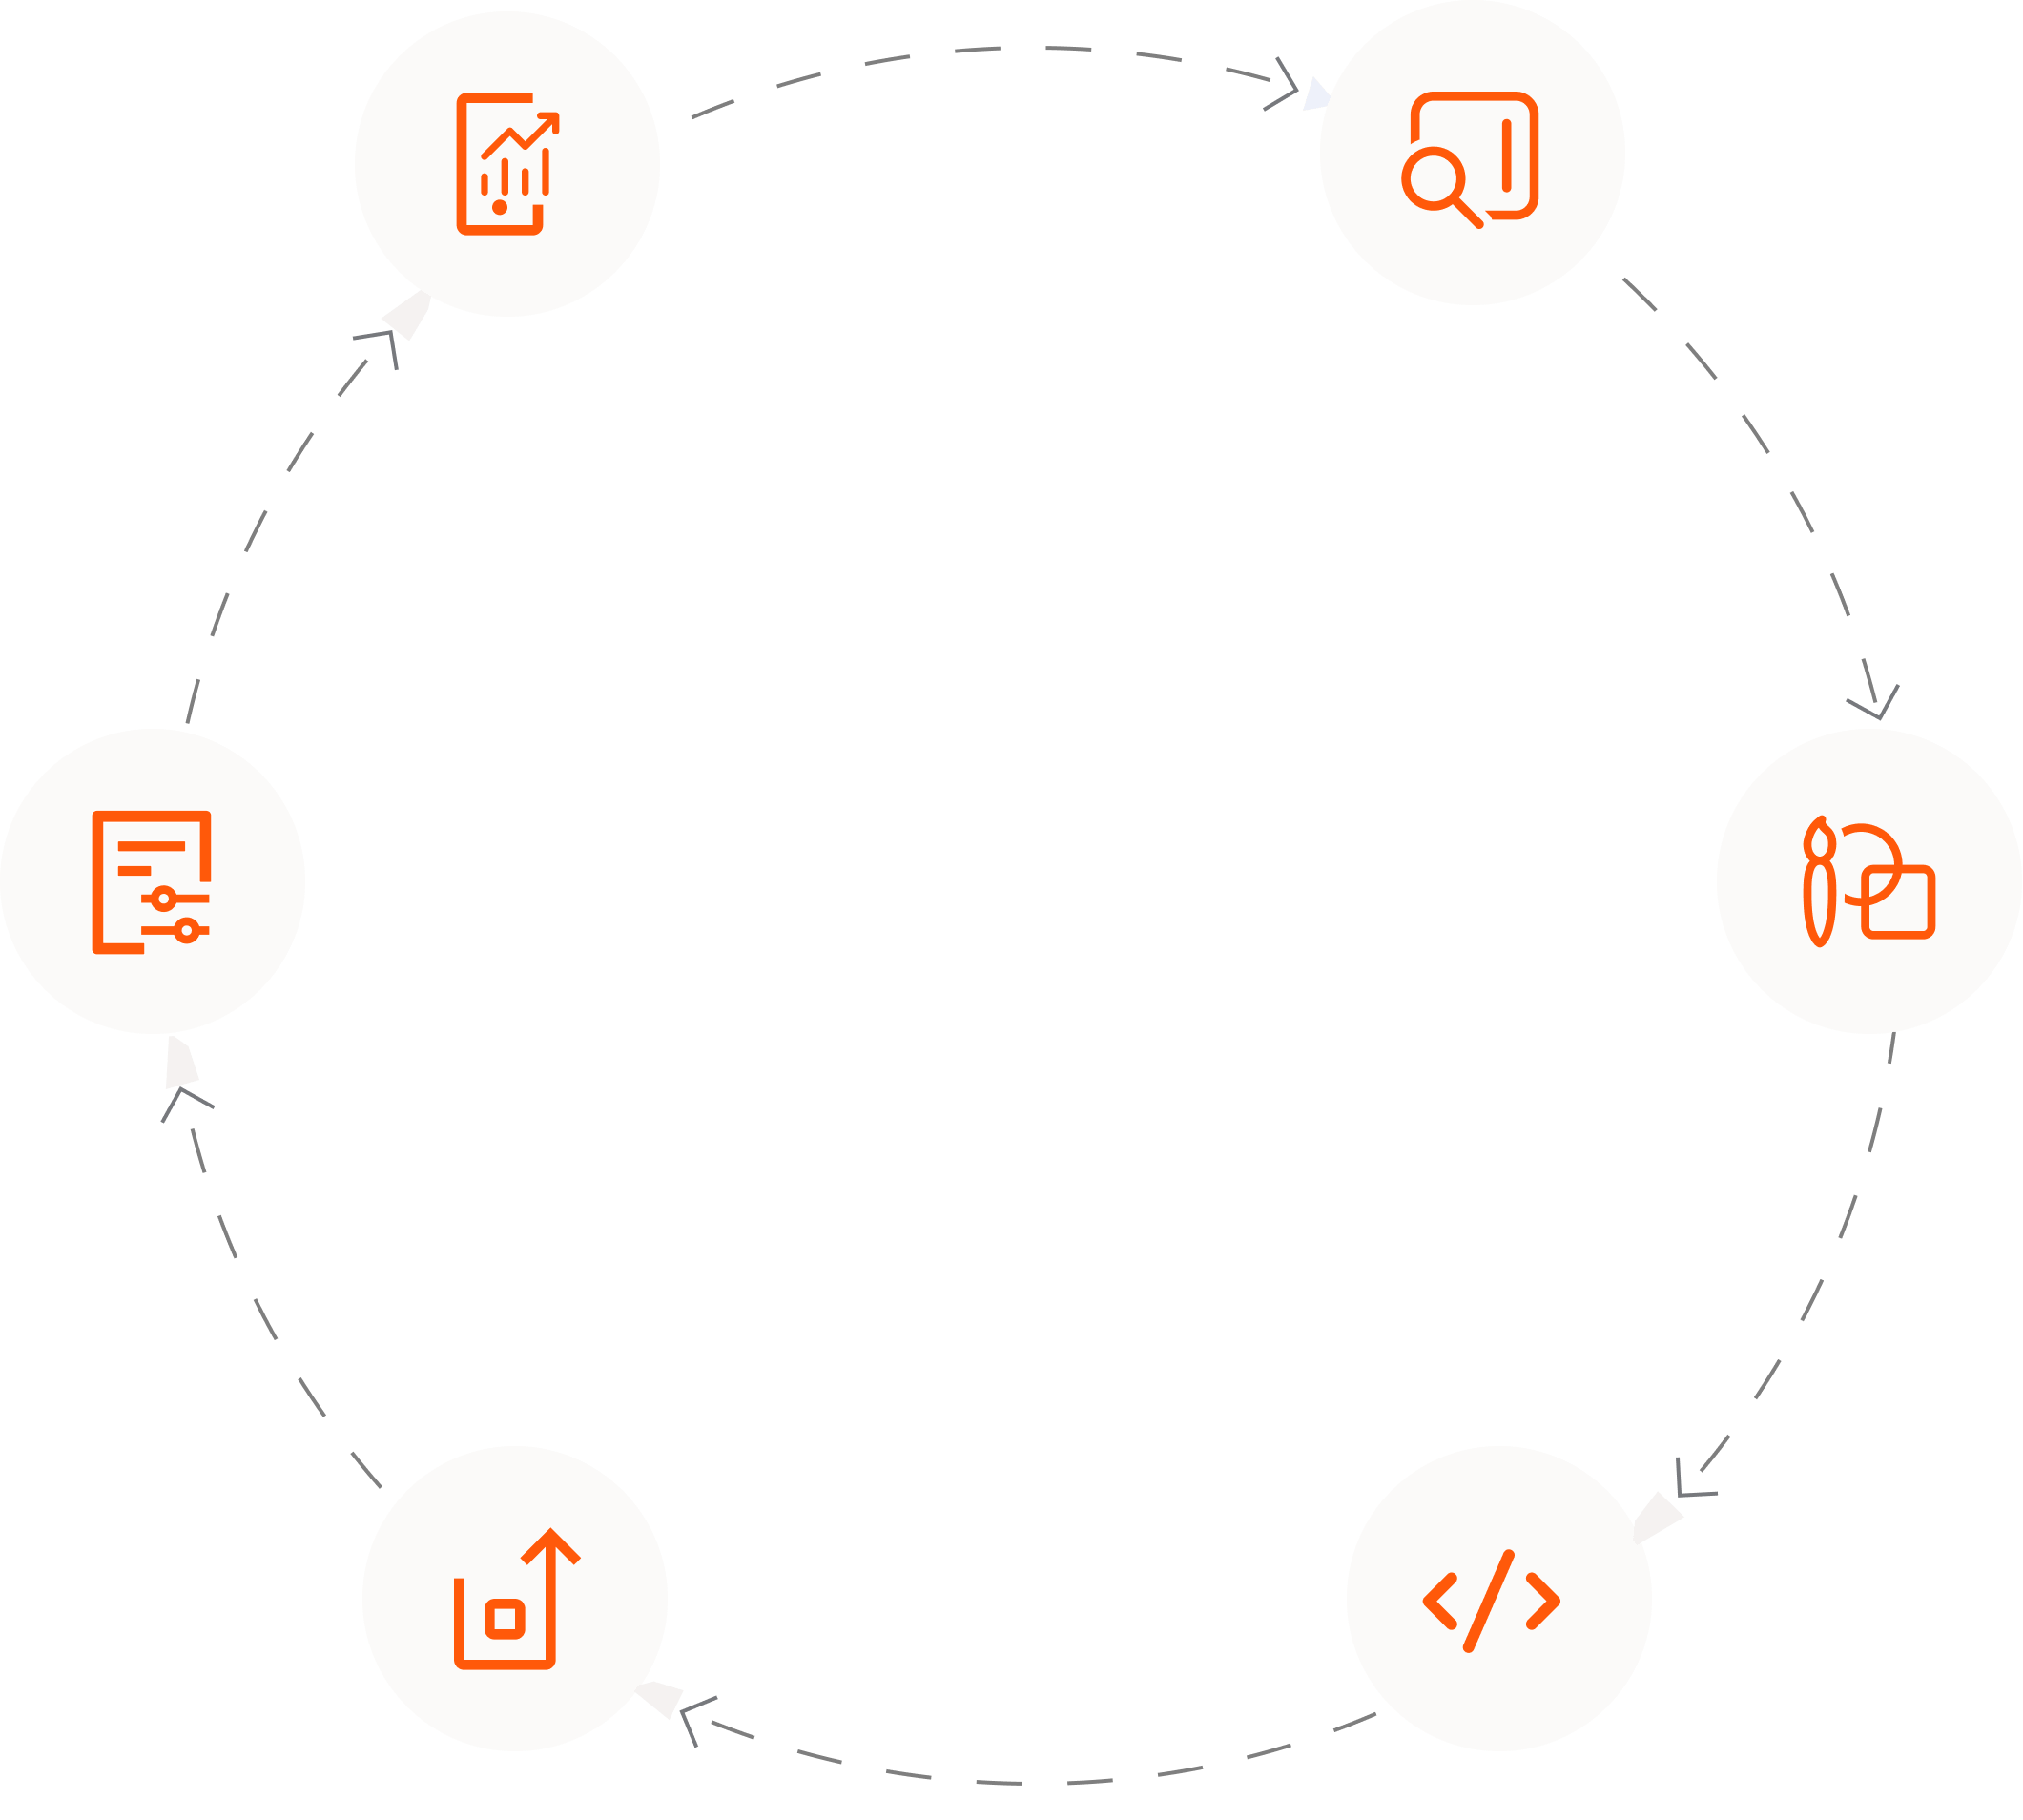 circle-with-icon